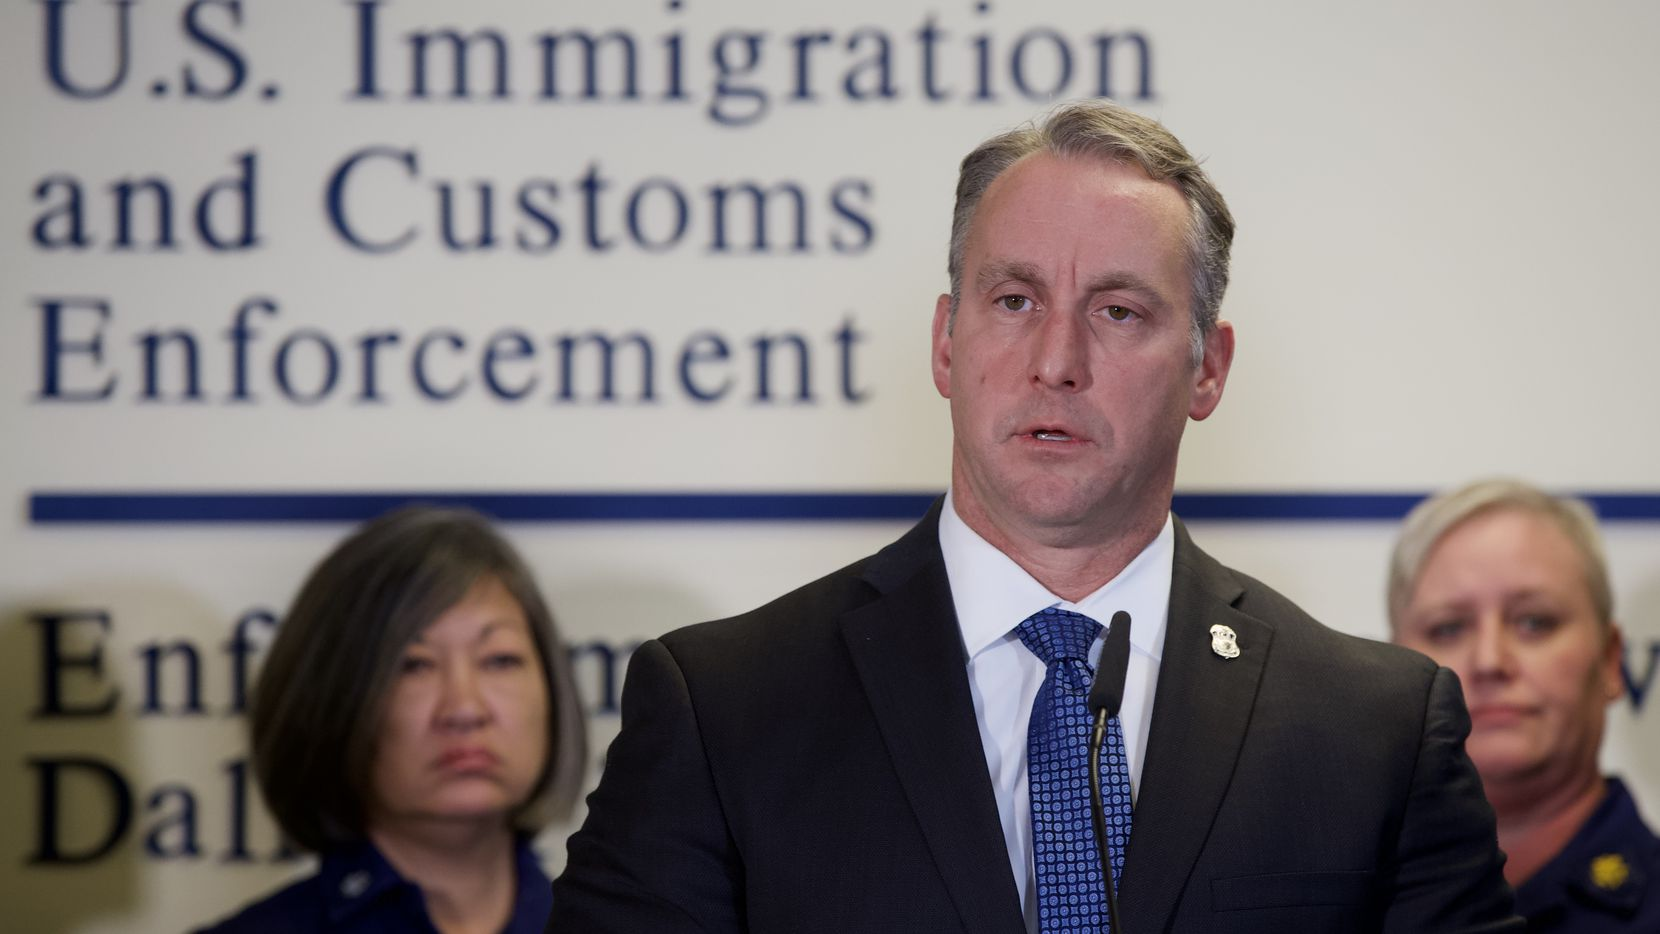 Acting ICE Director Matthew T. Albence announces new enforcement statistics for the nation during a news conference held at the U.S. Immigration and Customs Dallas Field Office. Albence said that the Dallas regional office leads the nation in apprehensions.